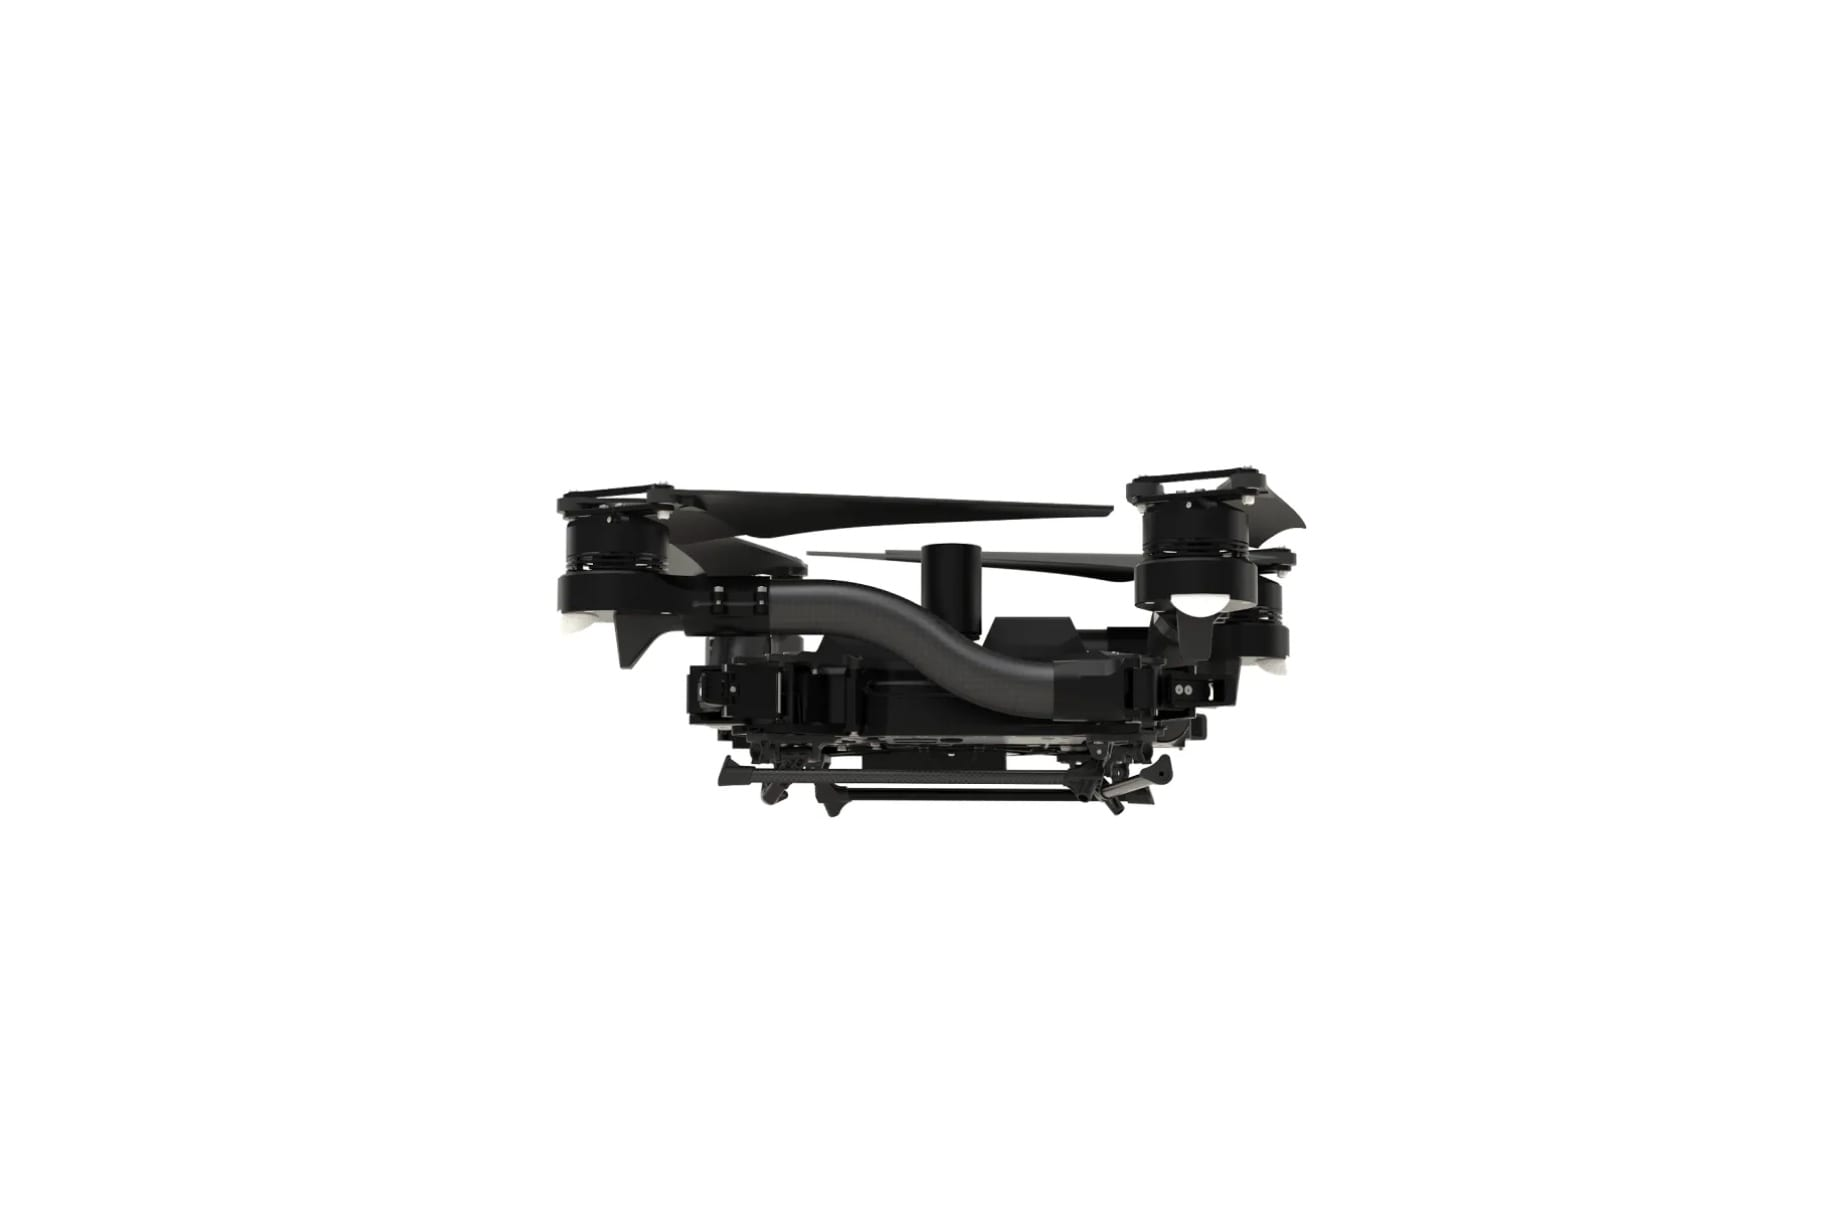 Freefly and Auterion announce the release of the Astro drone | DroneXL.co